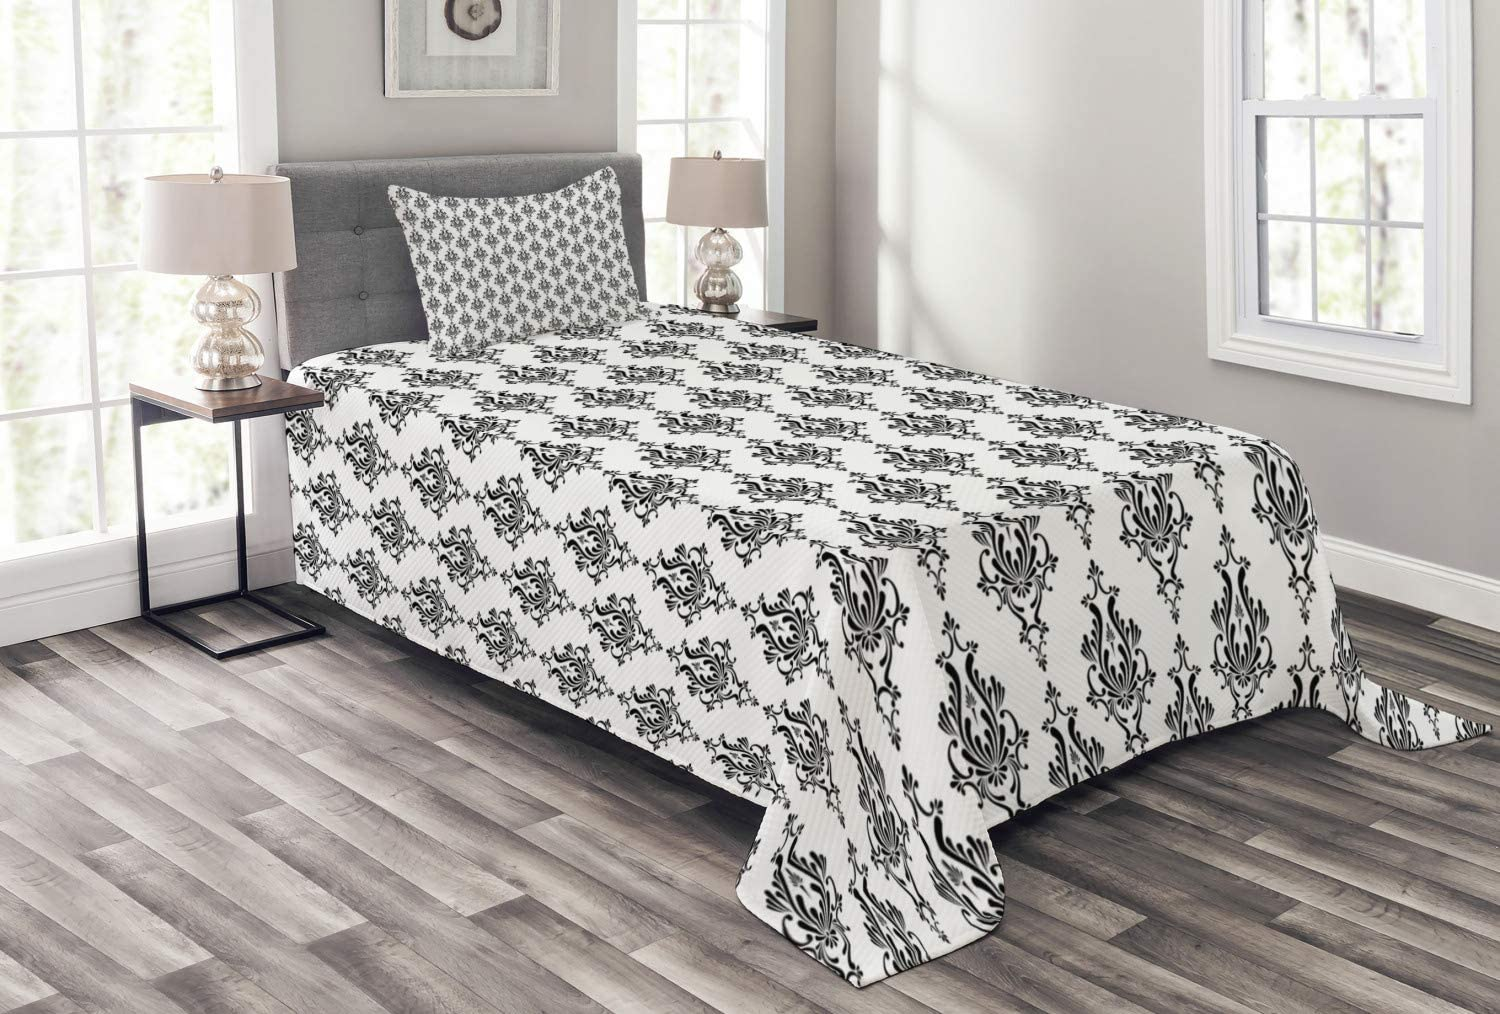 Ambesonne Damask Bedspread, Baroque Style Victorian Renaissance Pattern with Effects Vintage Design, Decorative Quilted 2 Piece Coverlet Set with Pillow Sham, Twin Size, Black White